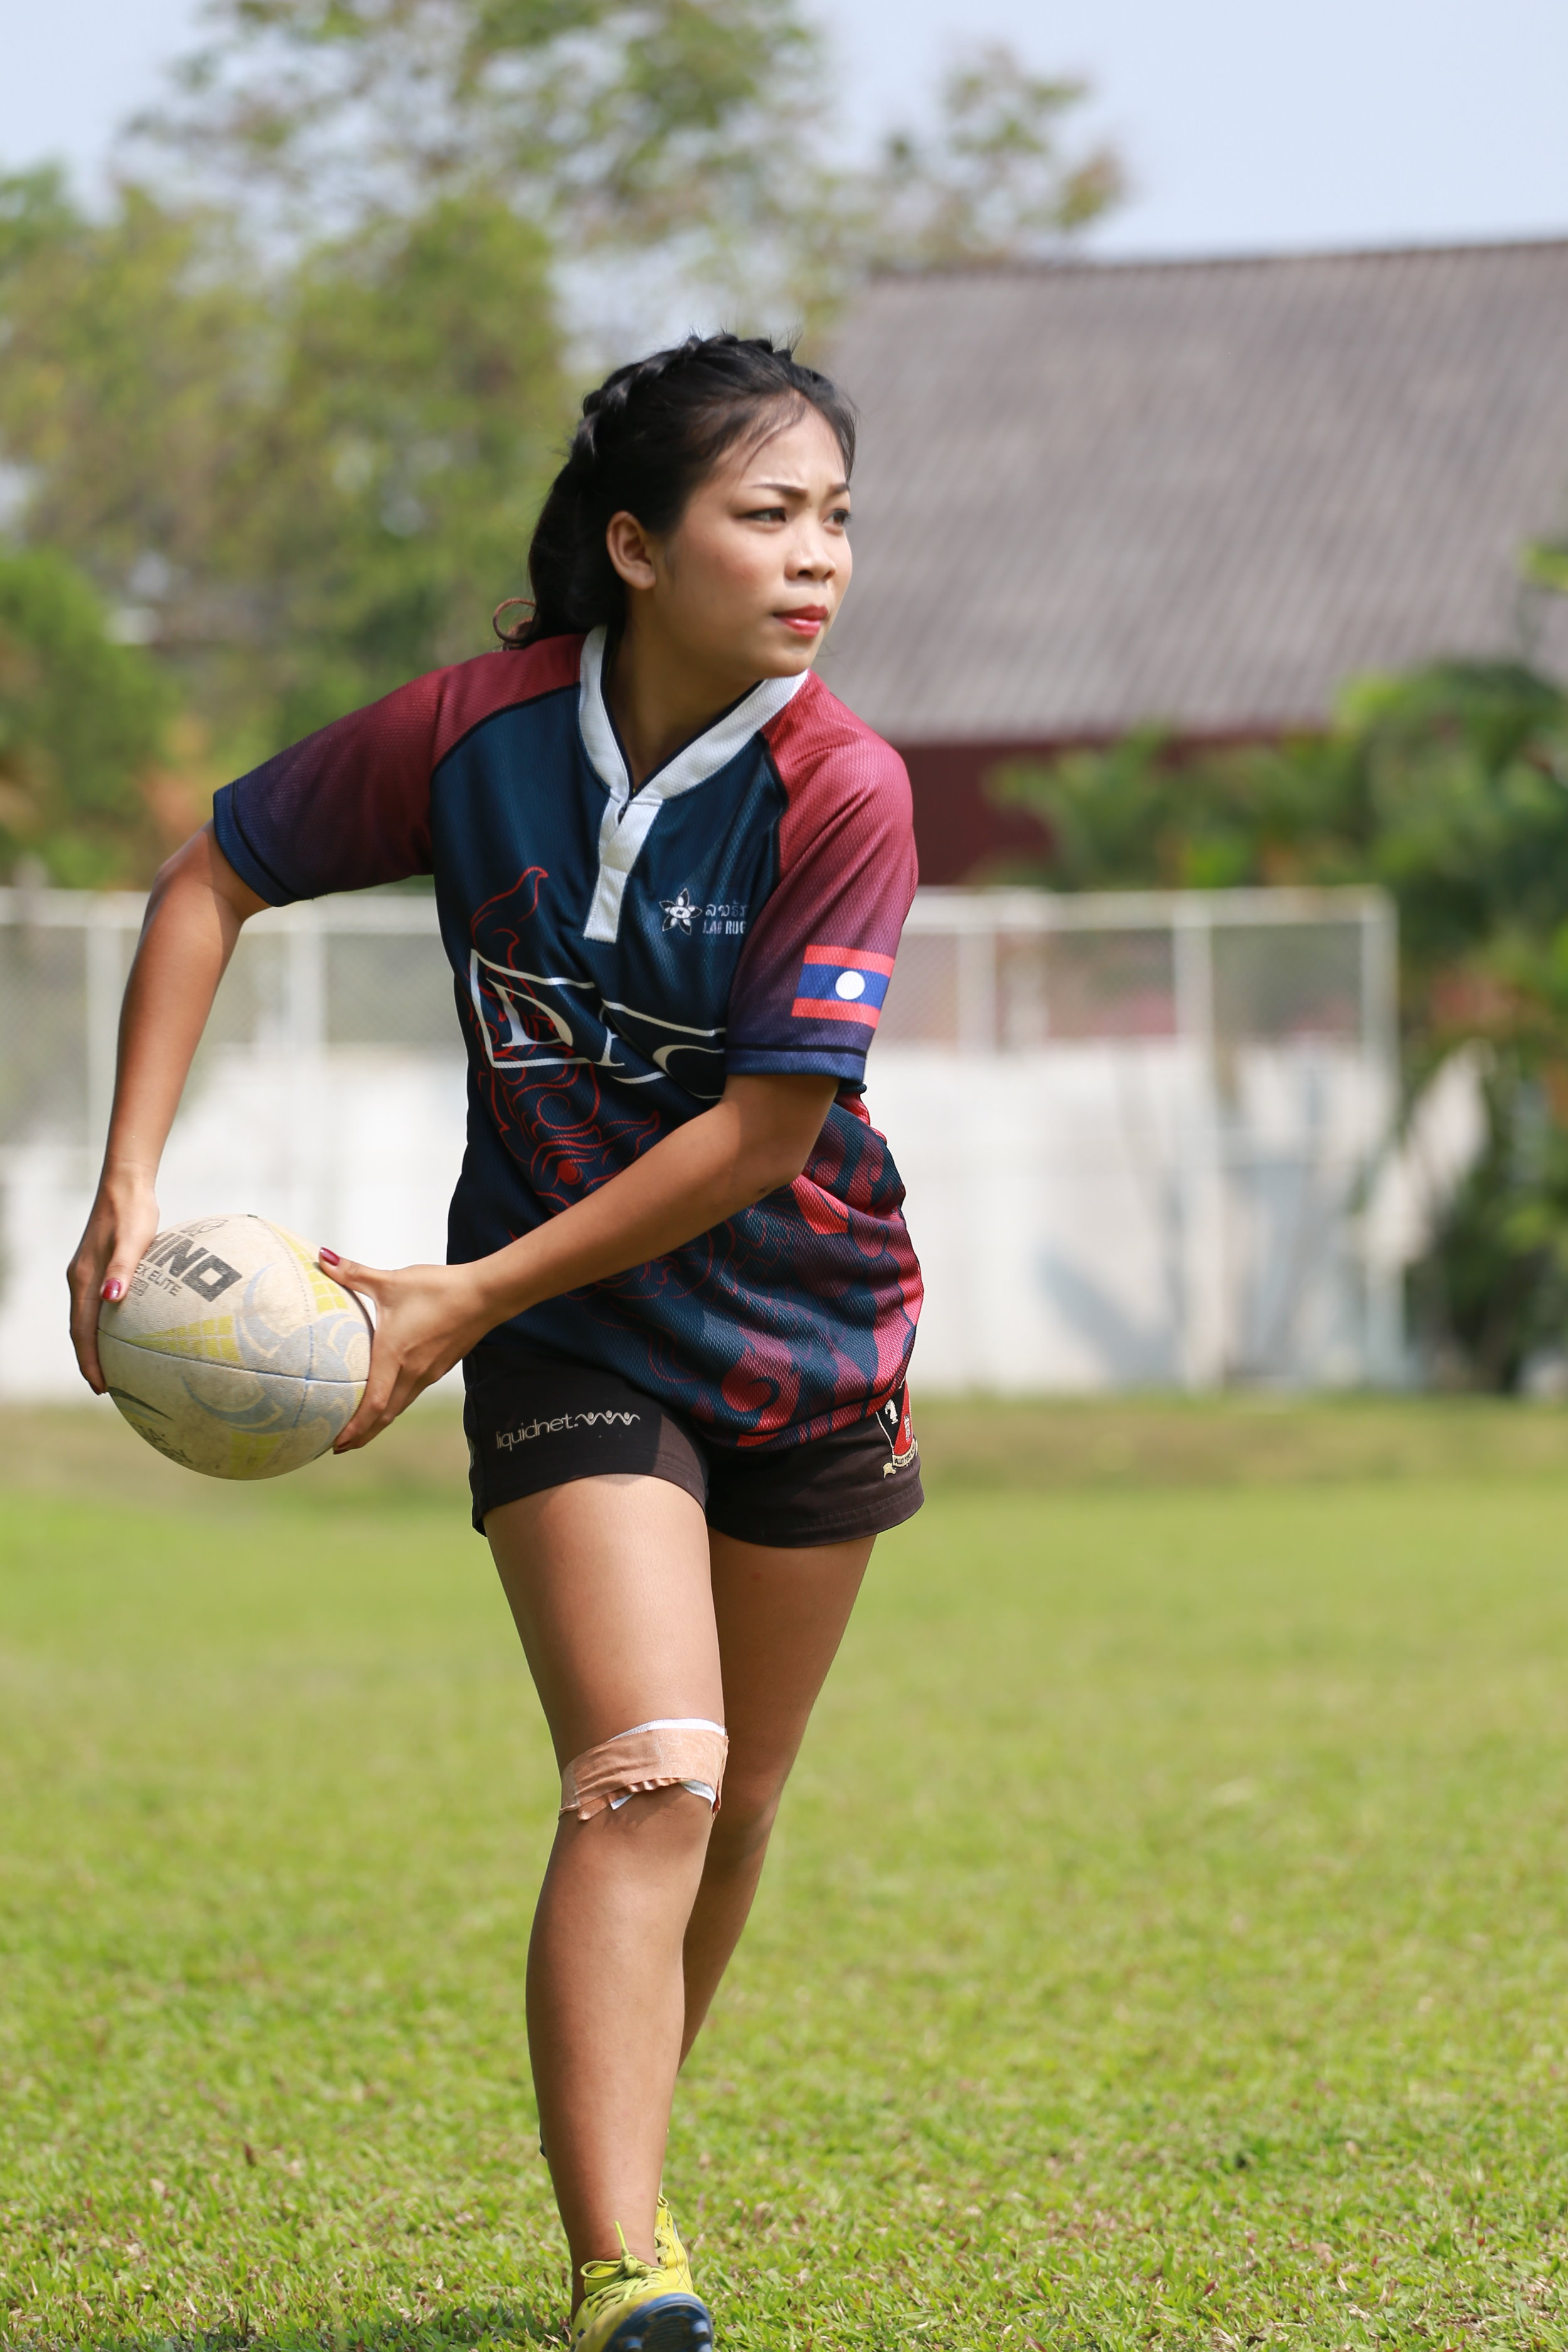 Mouk plays for the Vientiane Lions and joined the DAC Lao Women's National Team at the 2017 Southeast Asian Games in Kuala Lumpur and the 2018 Asia Rugby 7s Trophy in Brunei.